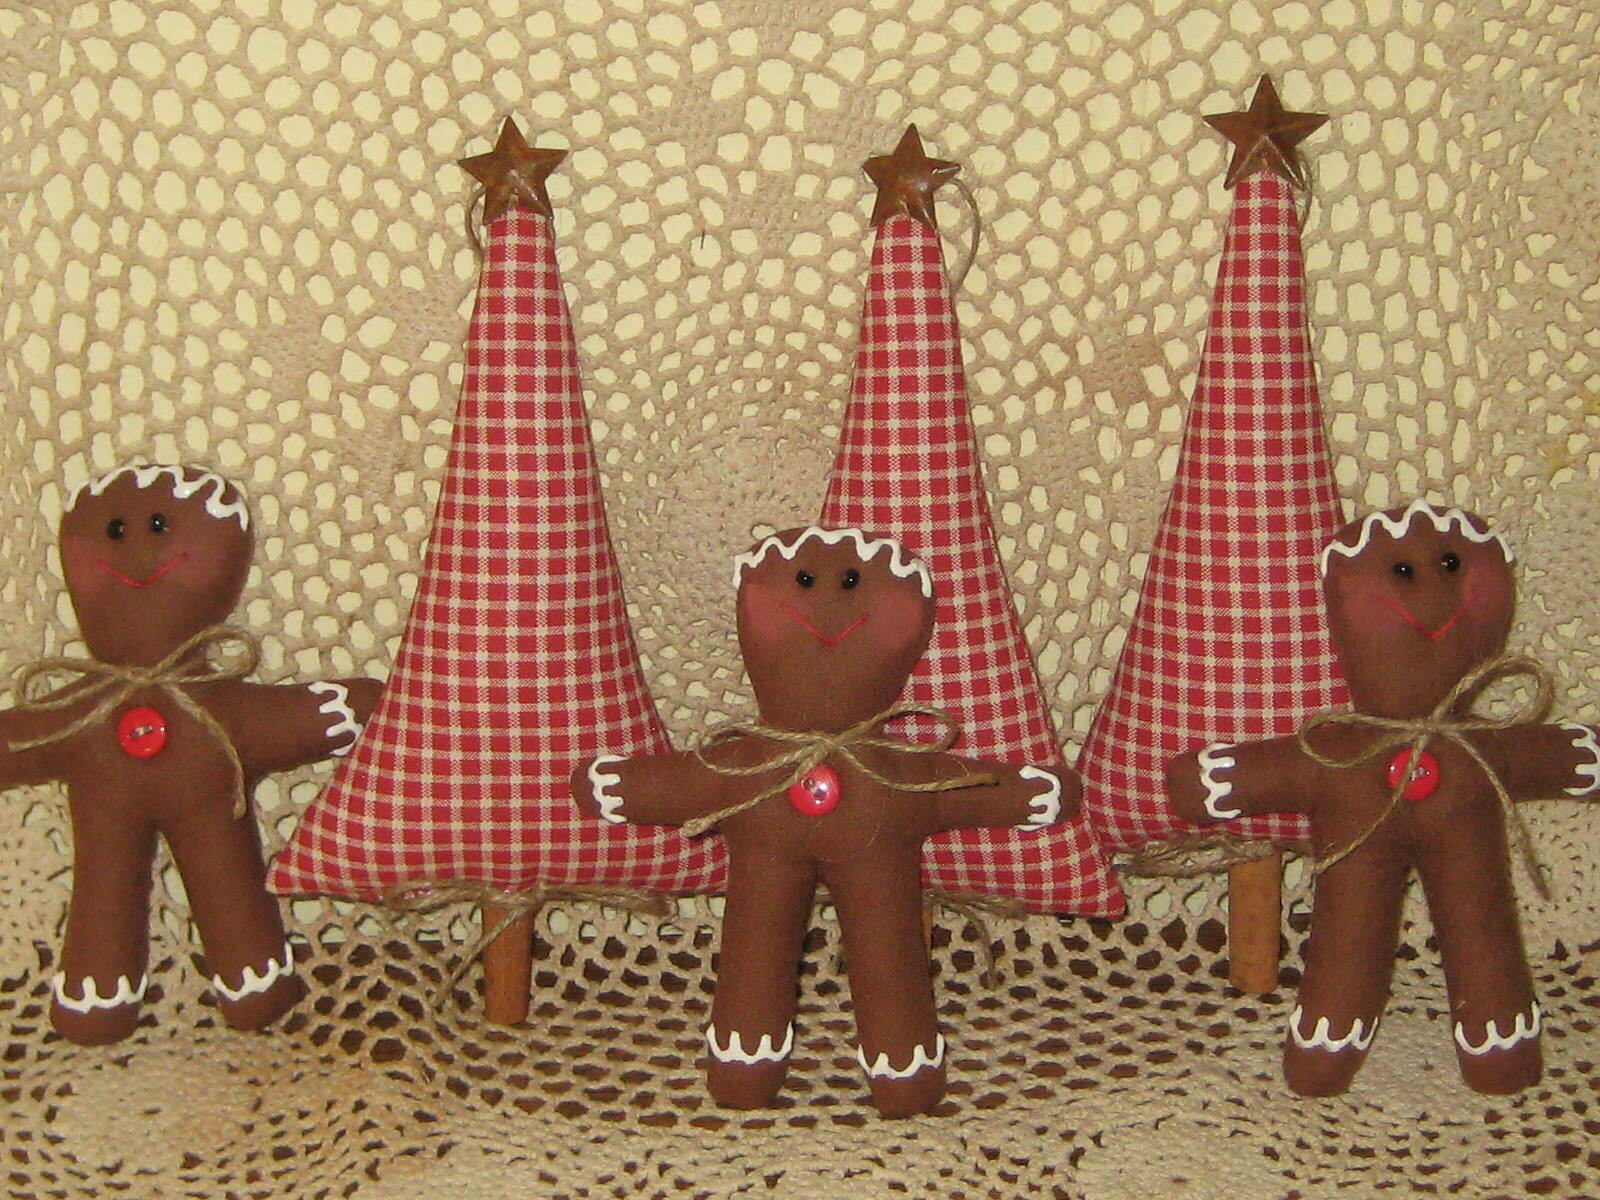 Country Christmas Handmade Fabric 3 Gingerbread 3 Trees Wreath Making Home Decor - $24.95